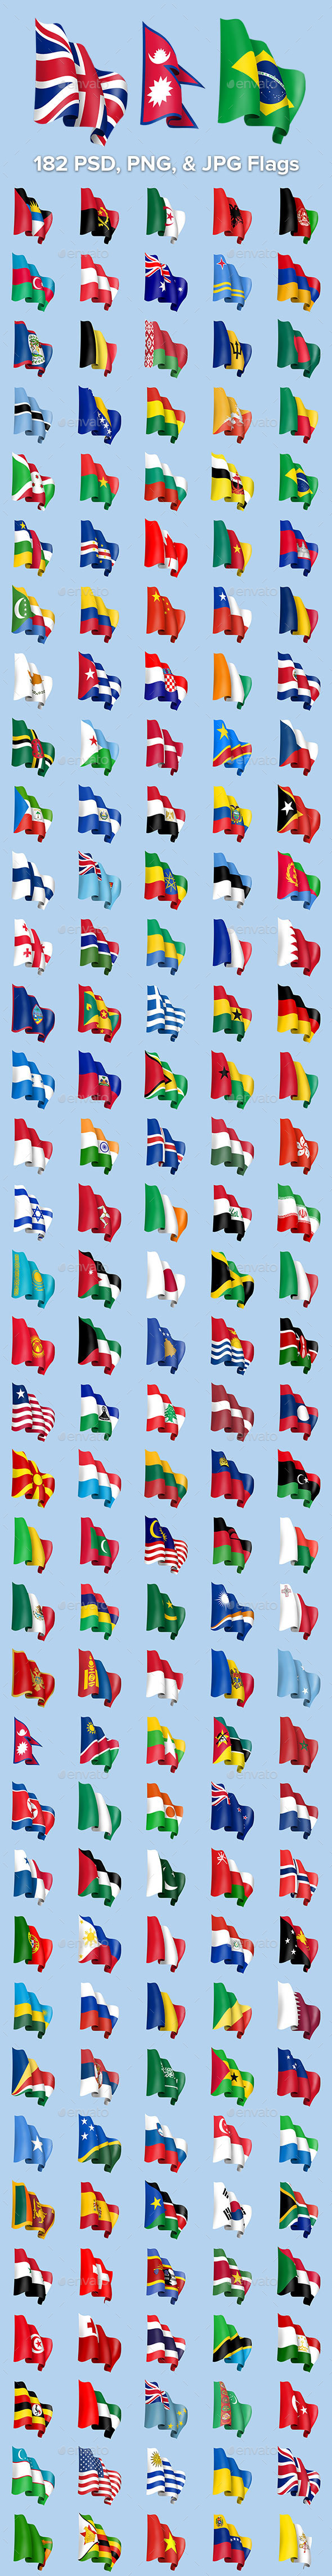 182 Waving Country Flags